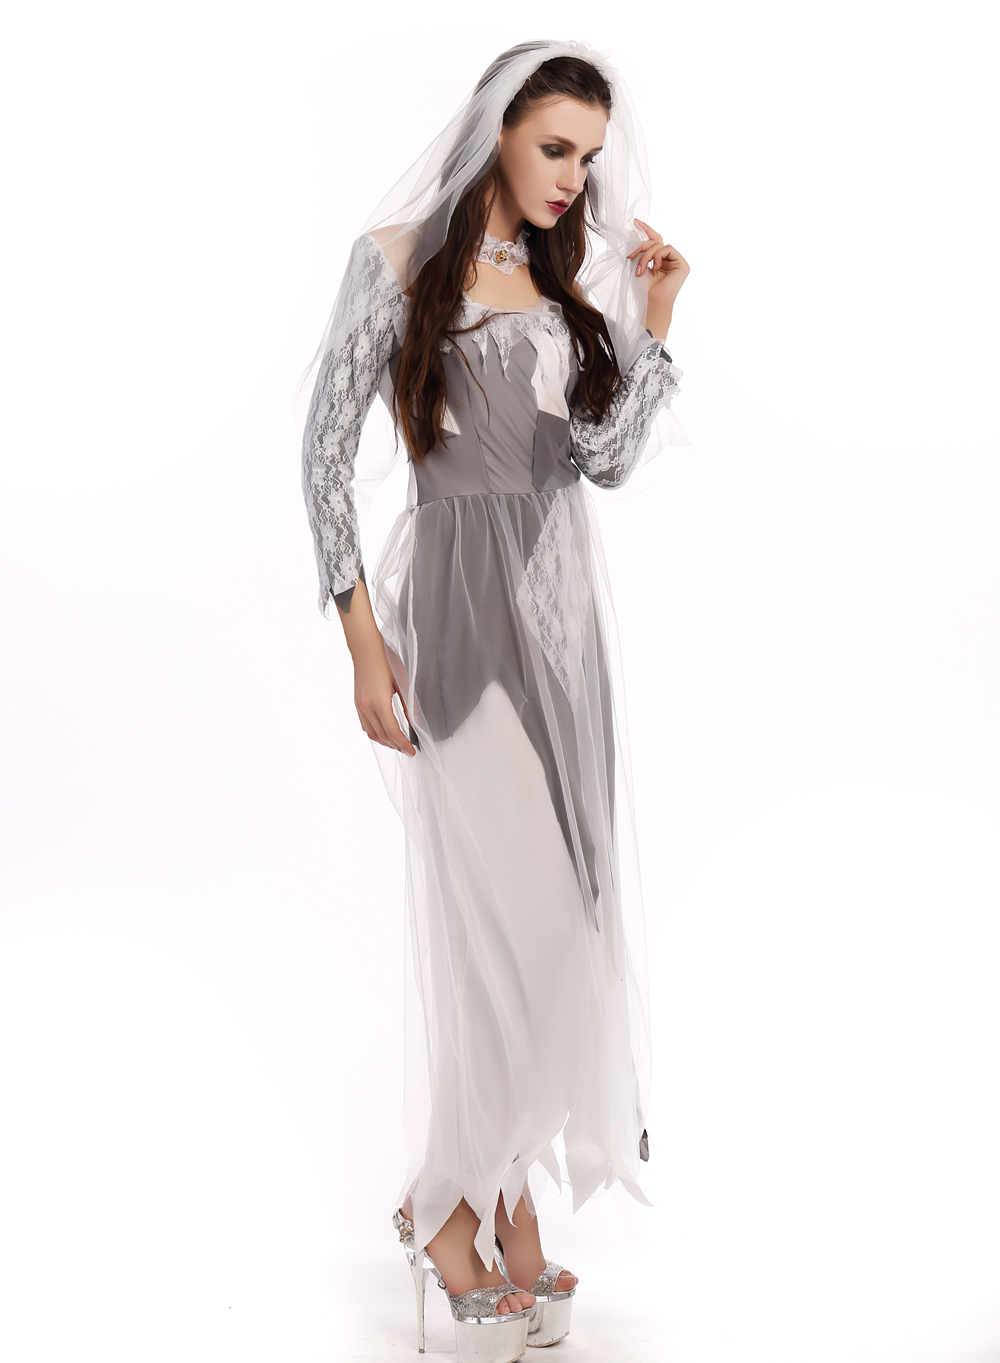 F1681 halloween bride lace dress costume,accessory:headwear, neckwear